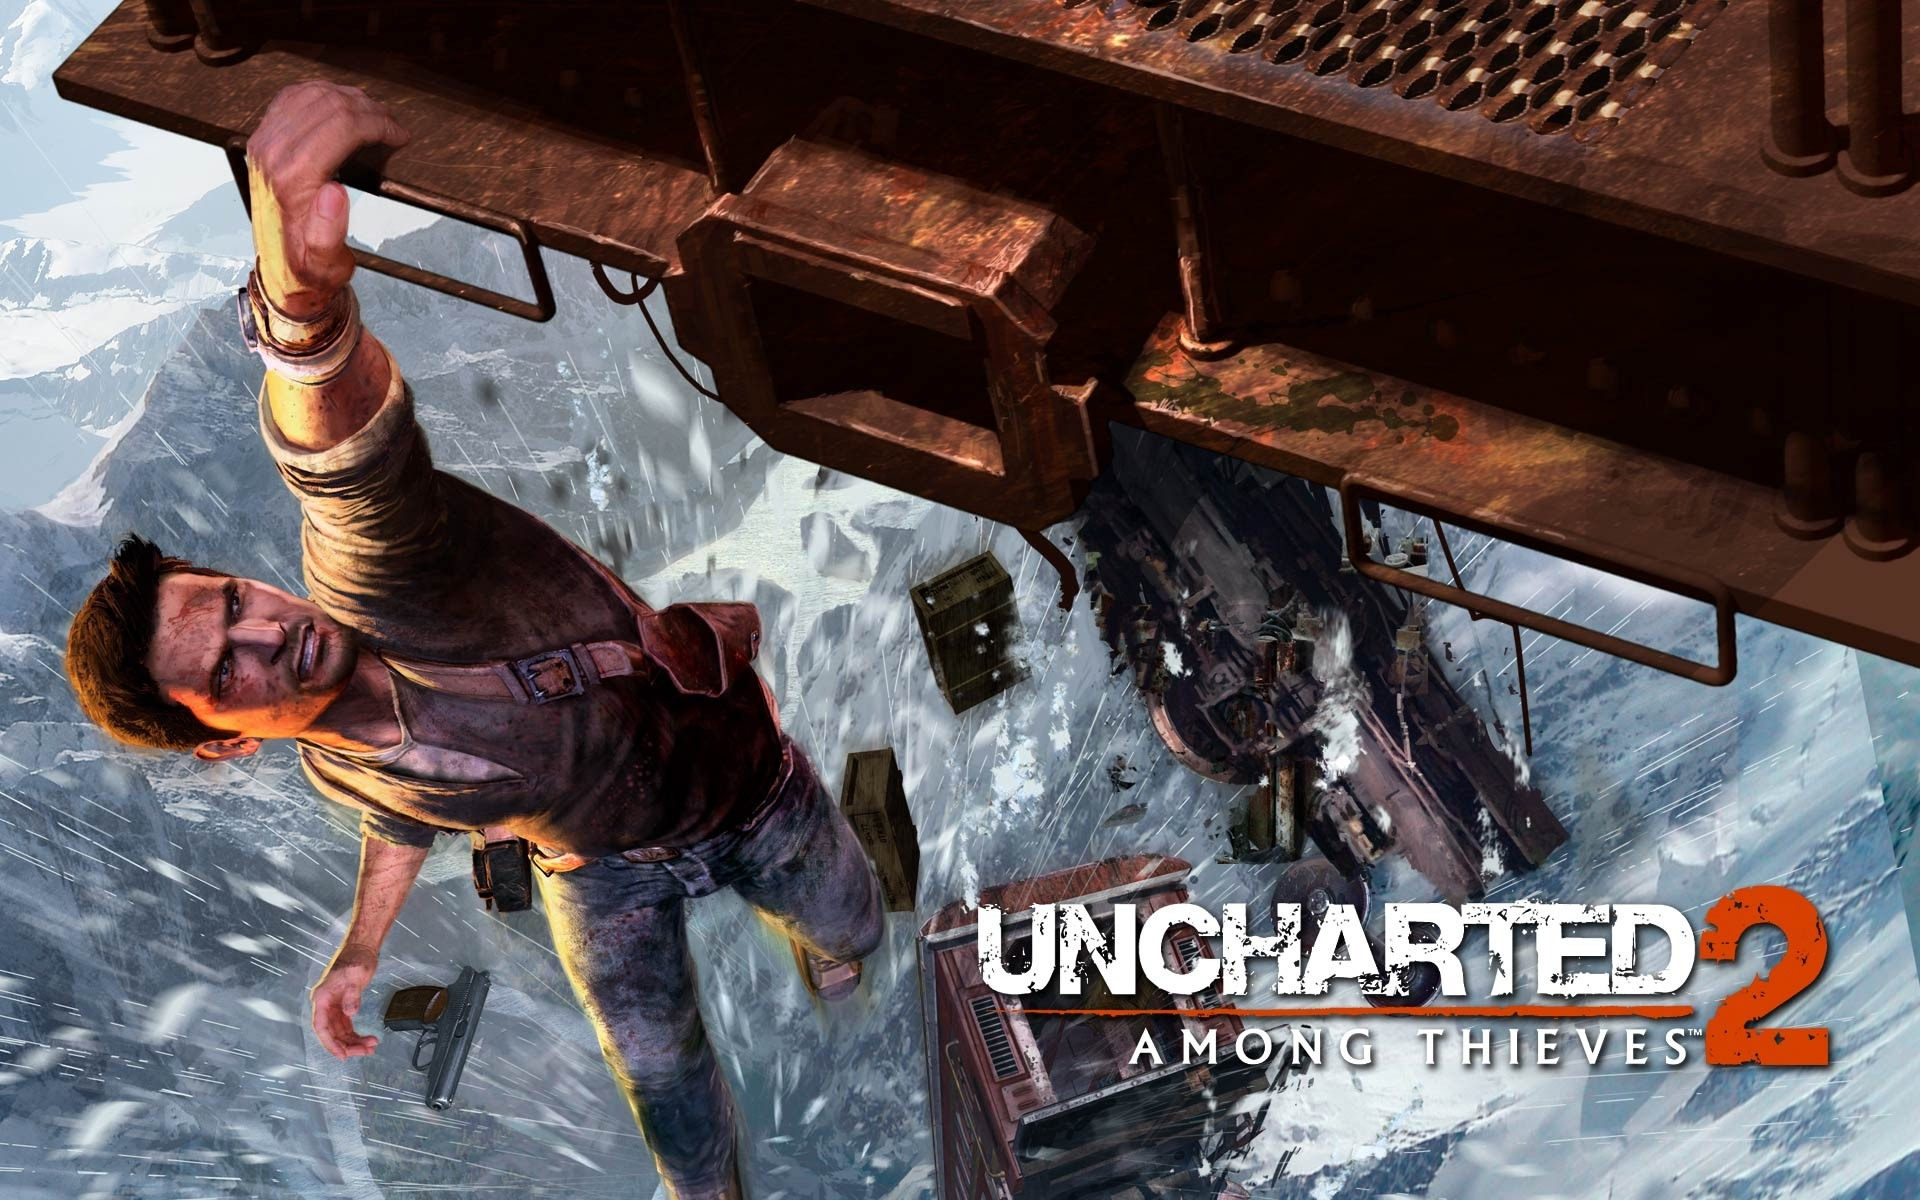 Gameboy Iphone X Wallpaper Uncharted 2 Fondos De Pantalla Uncharted 2 Fotos Gratis